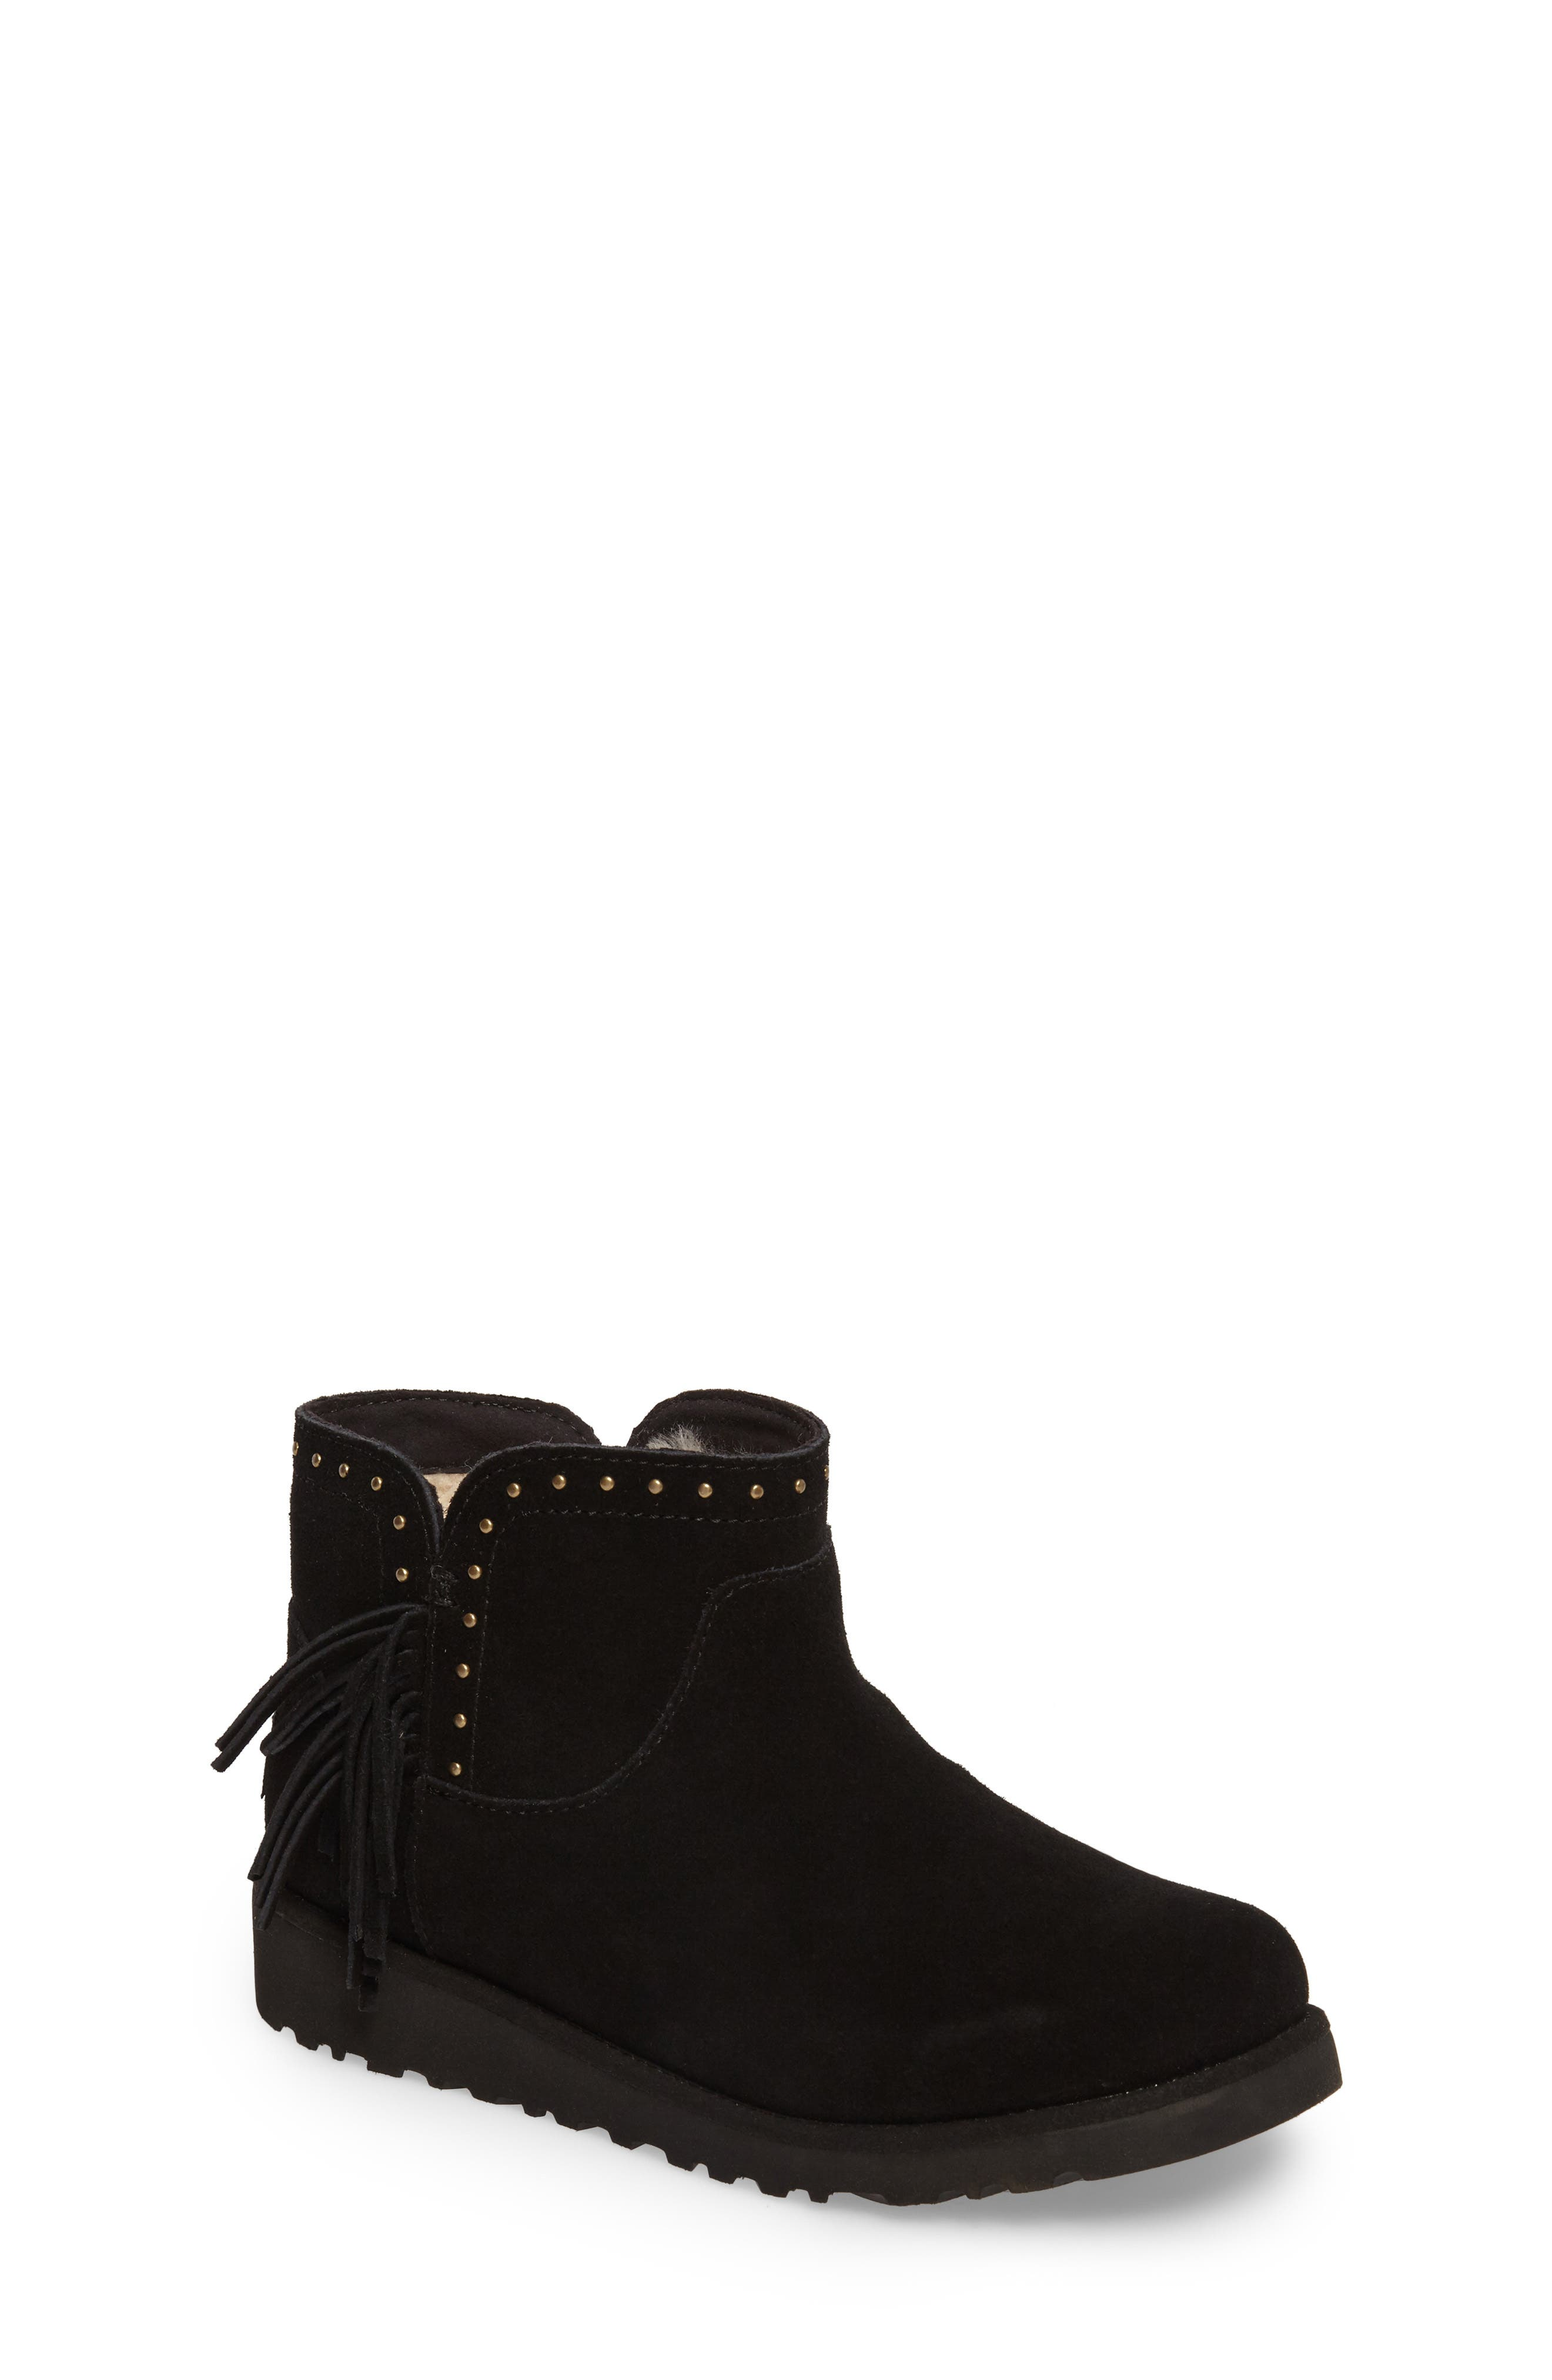 Cindy Water-Resistant Genuine Shearling Studded Bootie,                             Main thumbnail 1, color,                             001